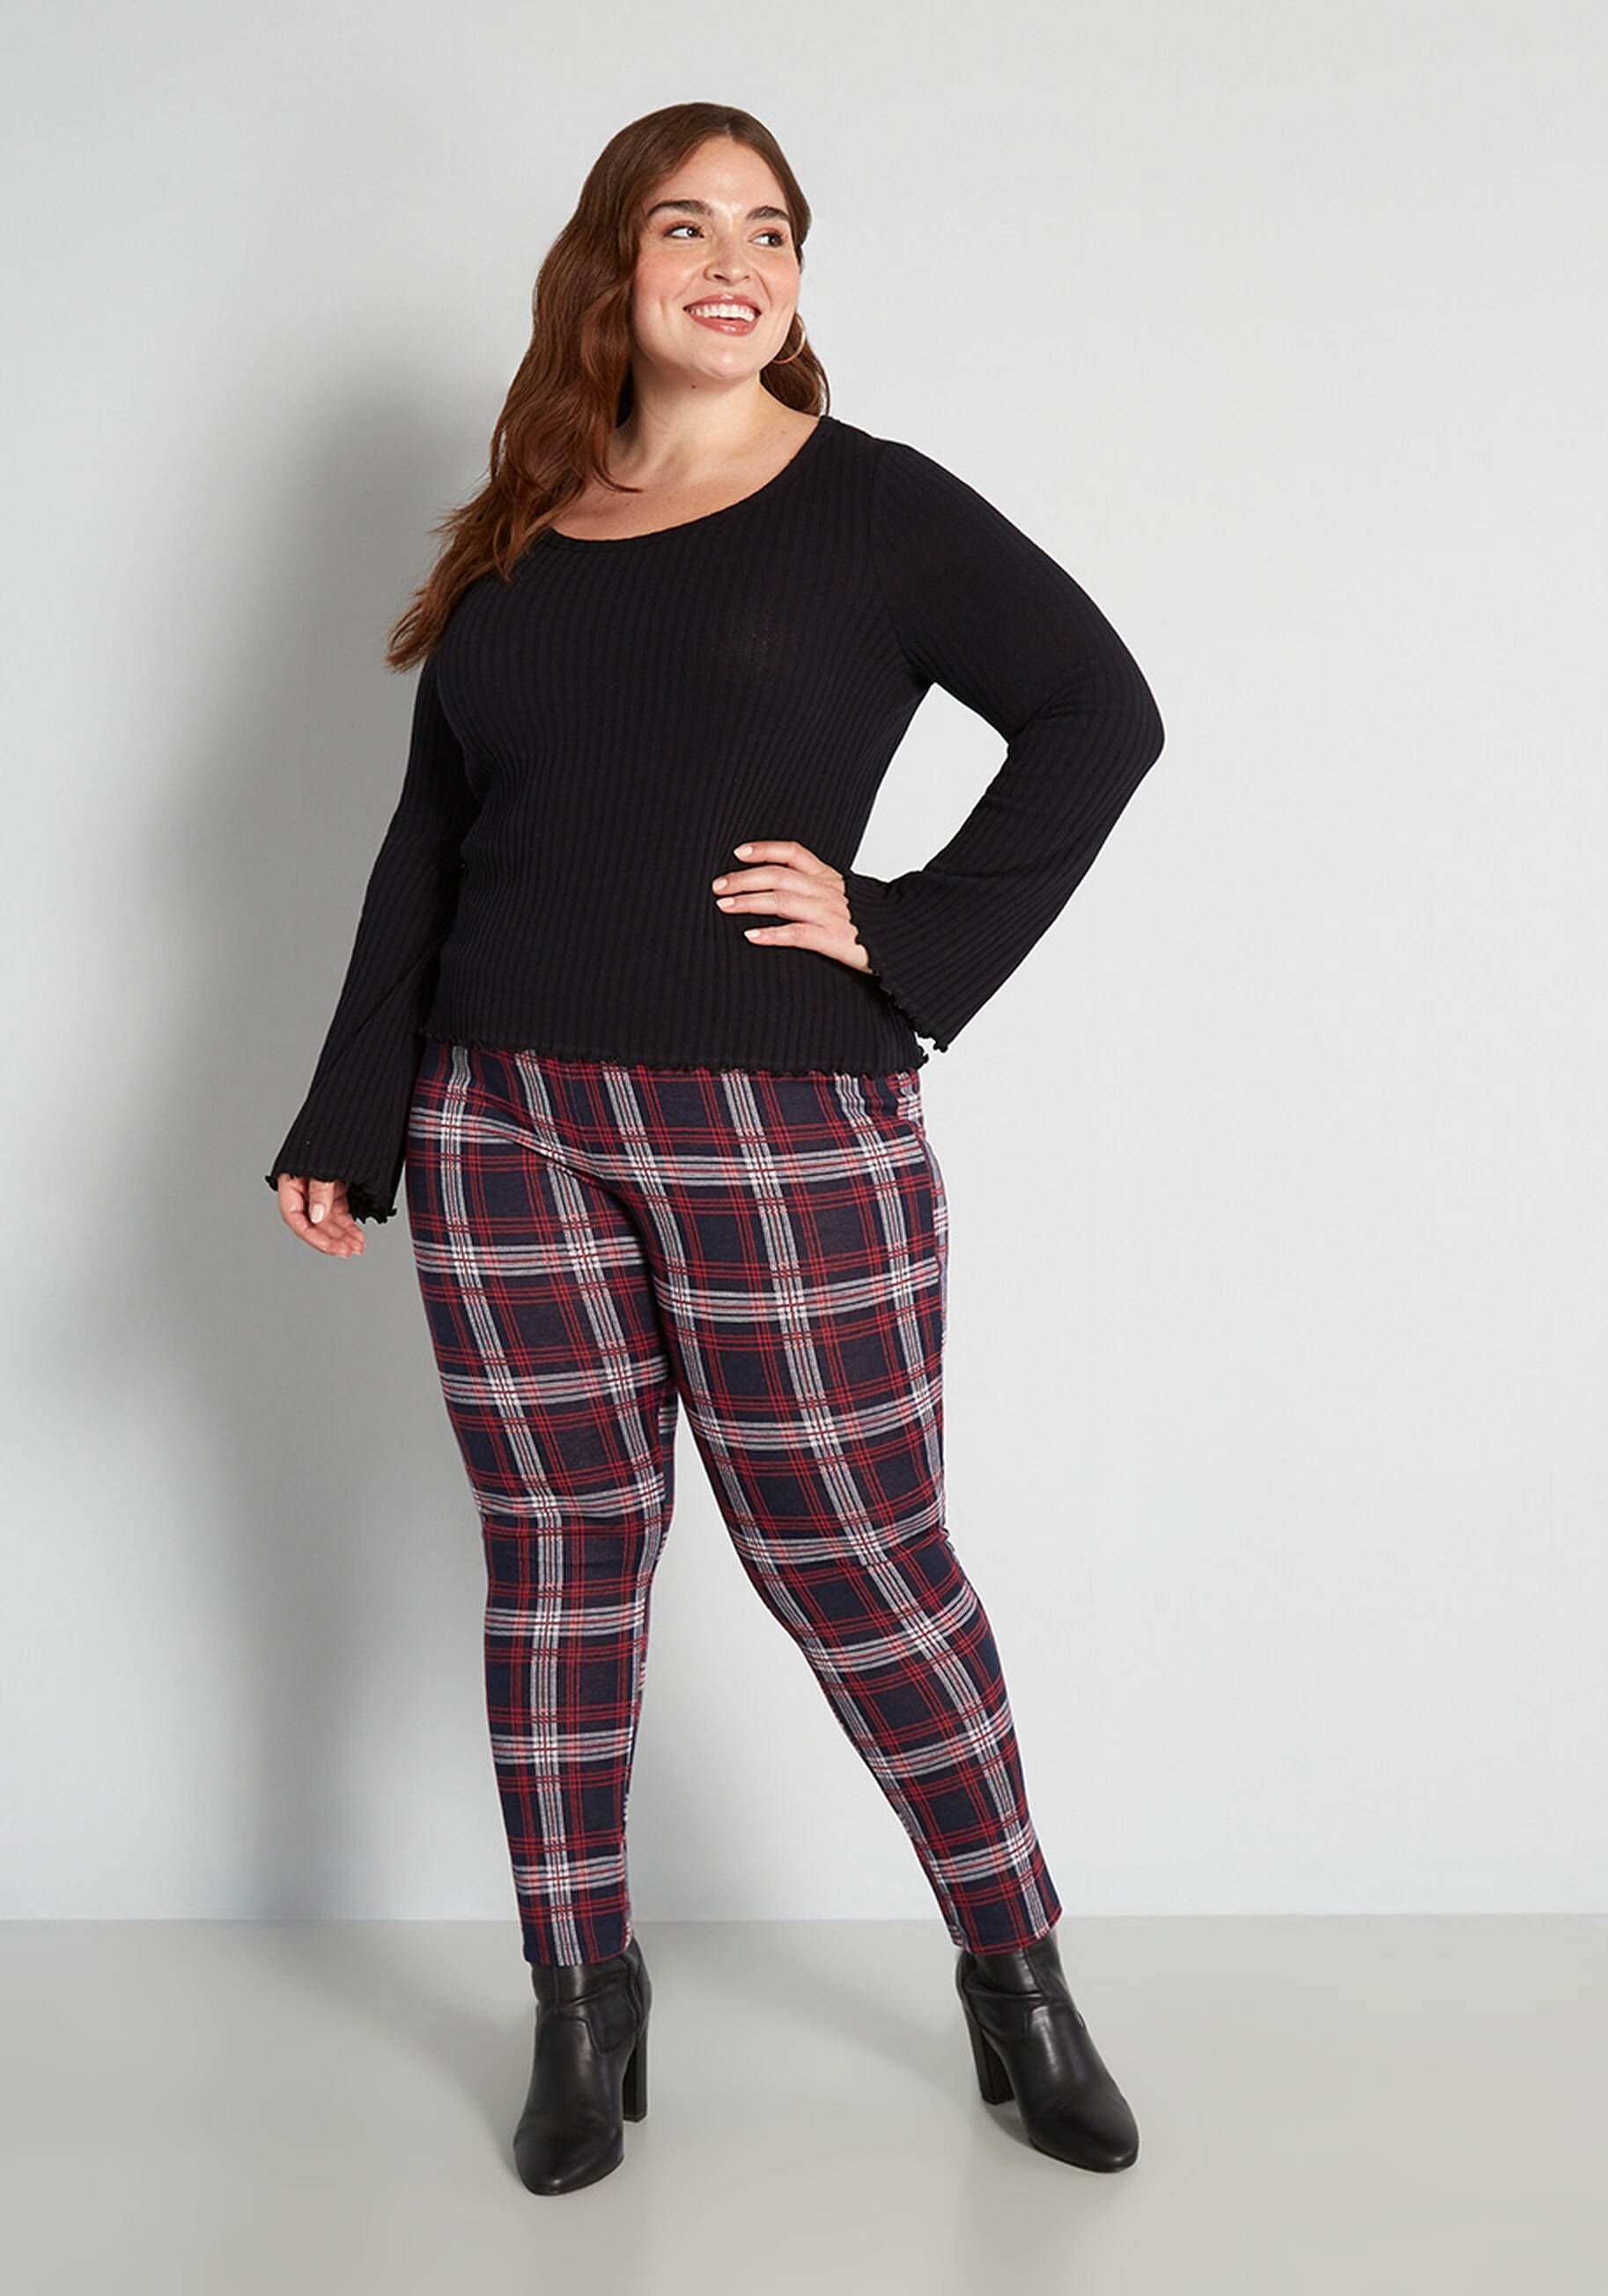 a model in red and blue plaid leggings